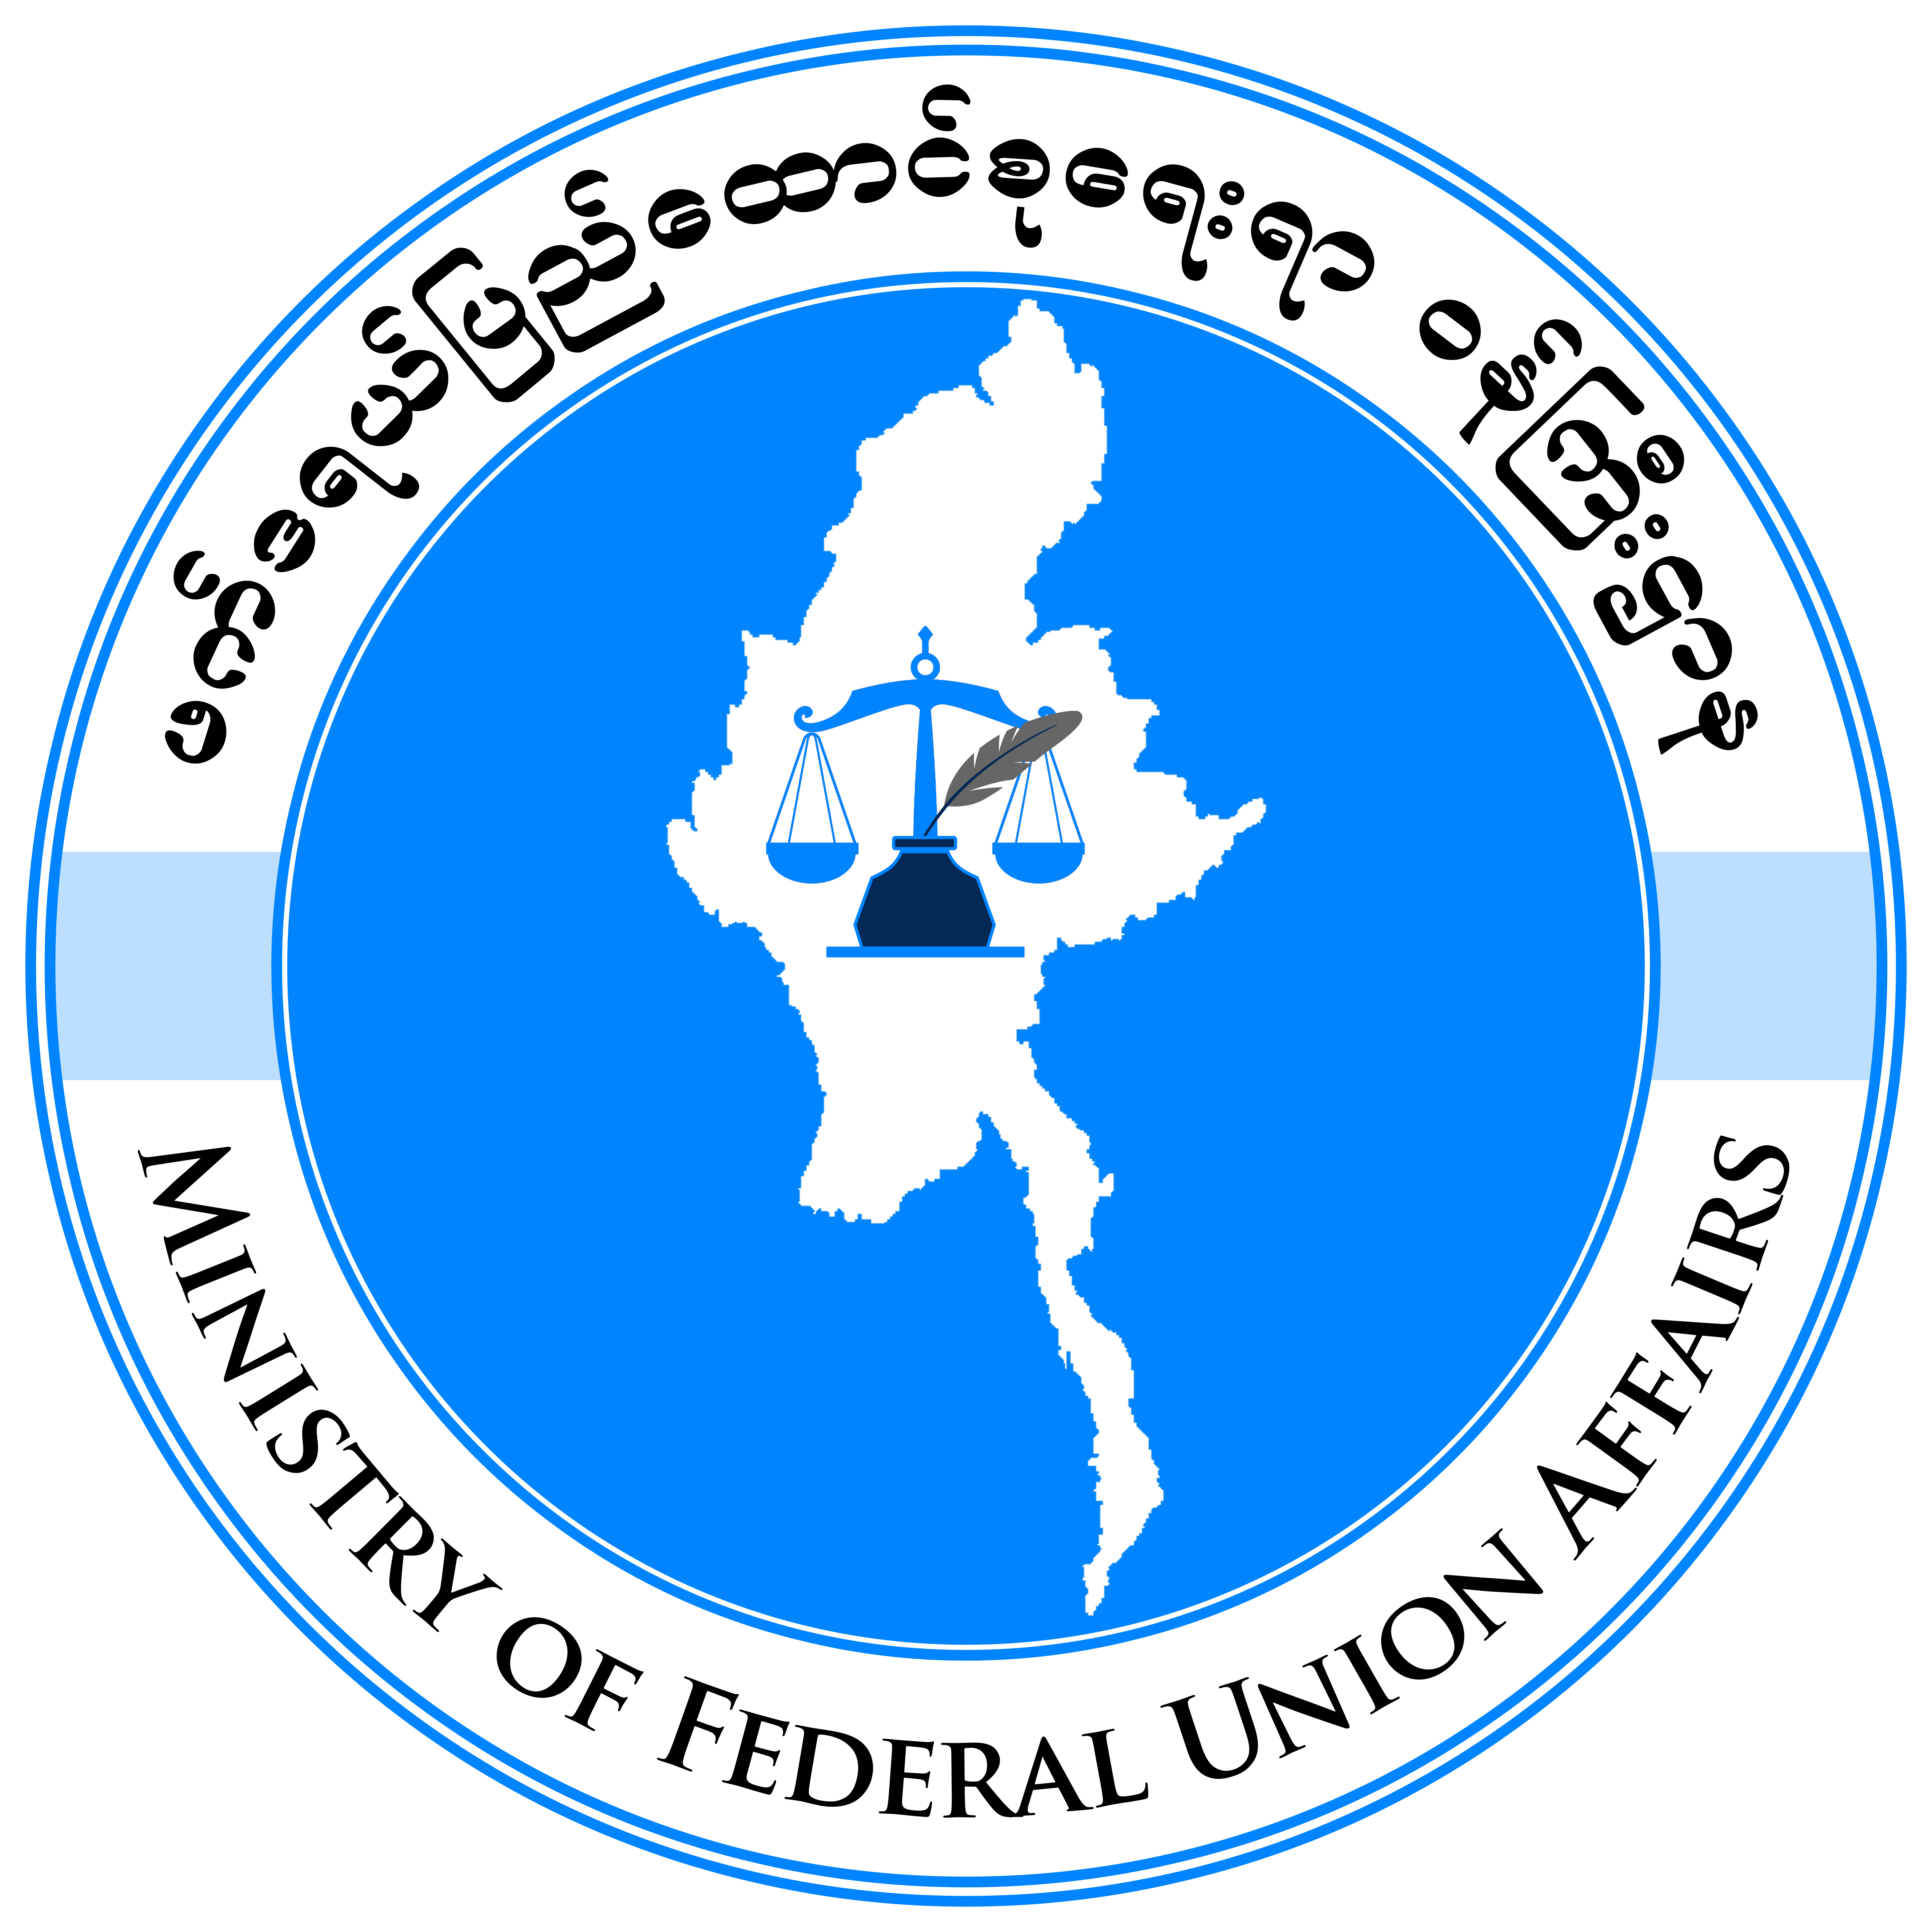 Ministry of Federal Union Affairs - MOFUA